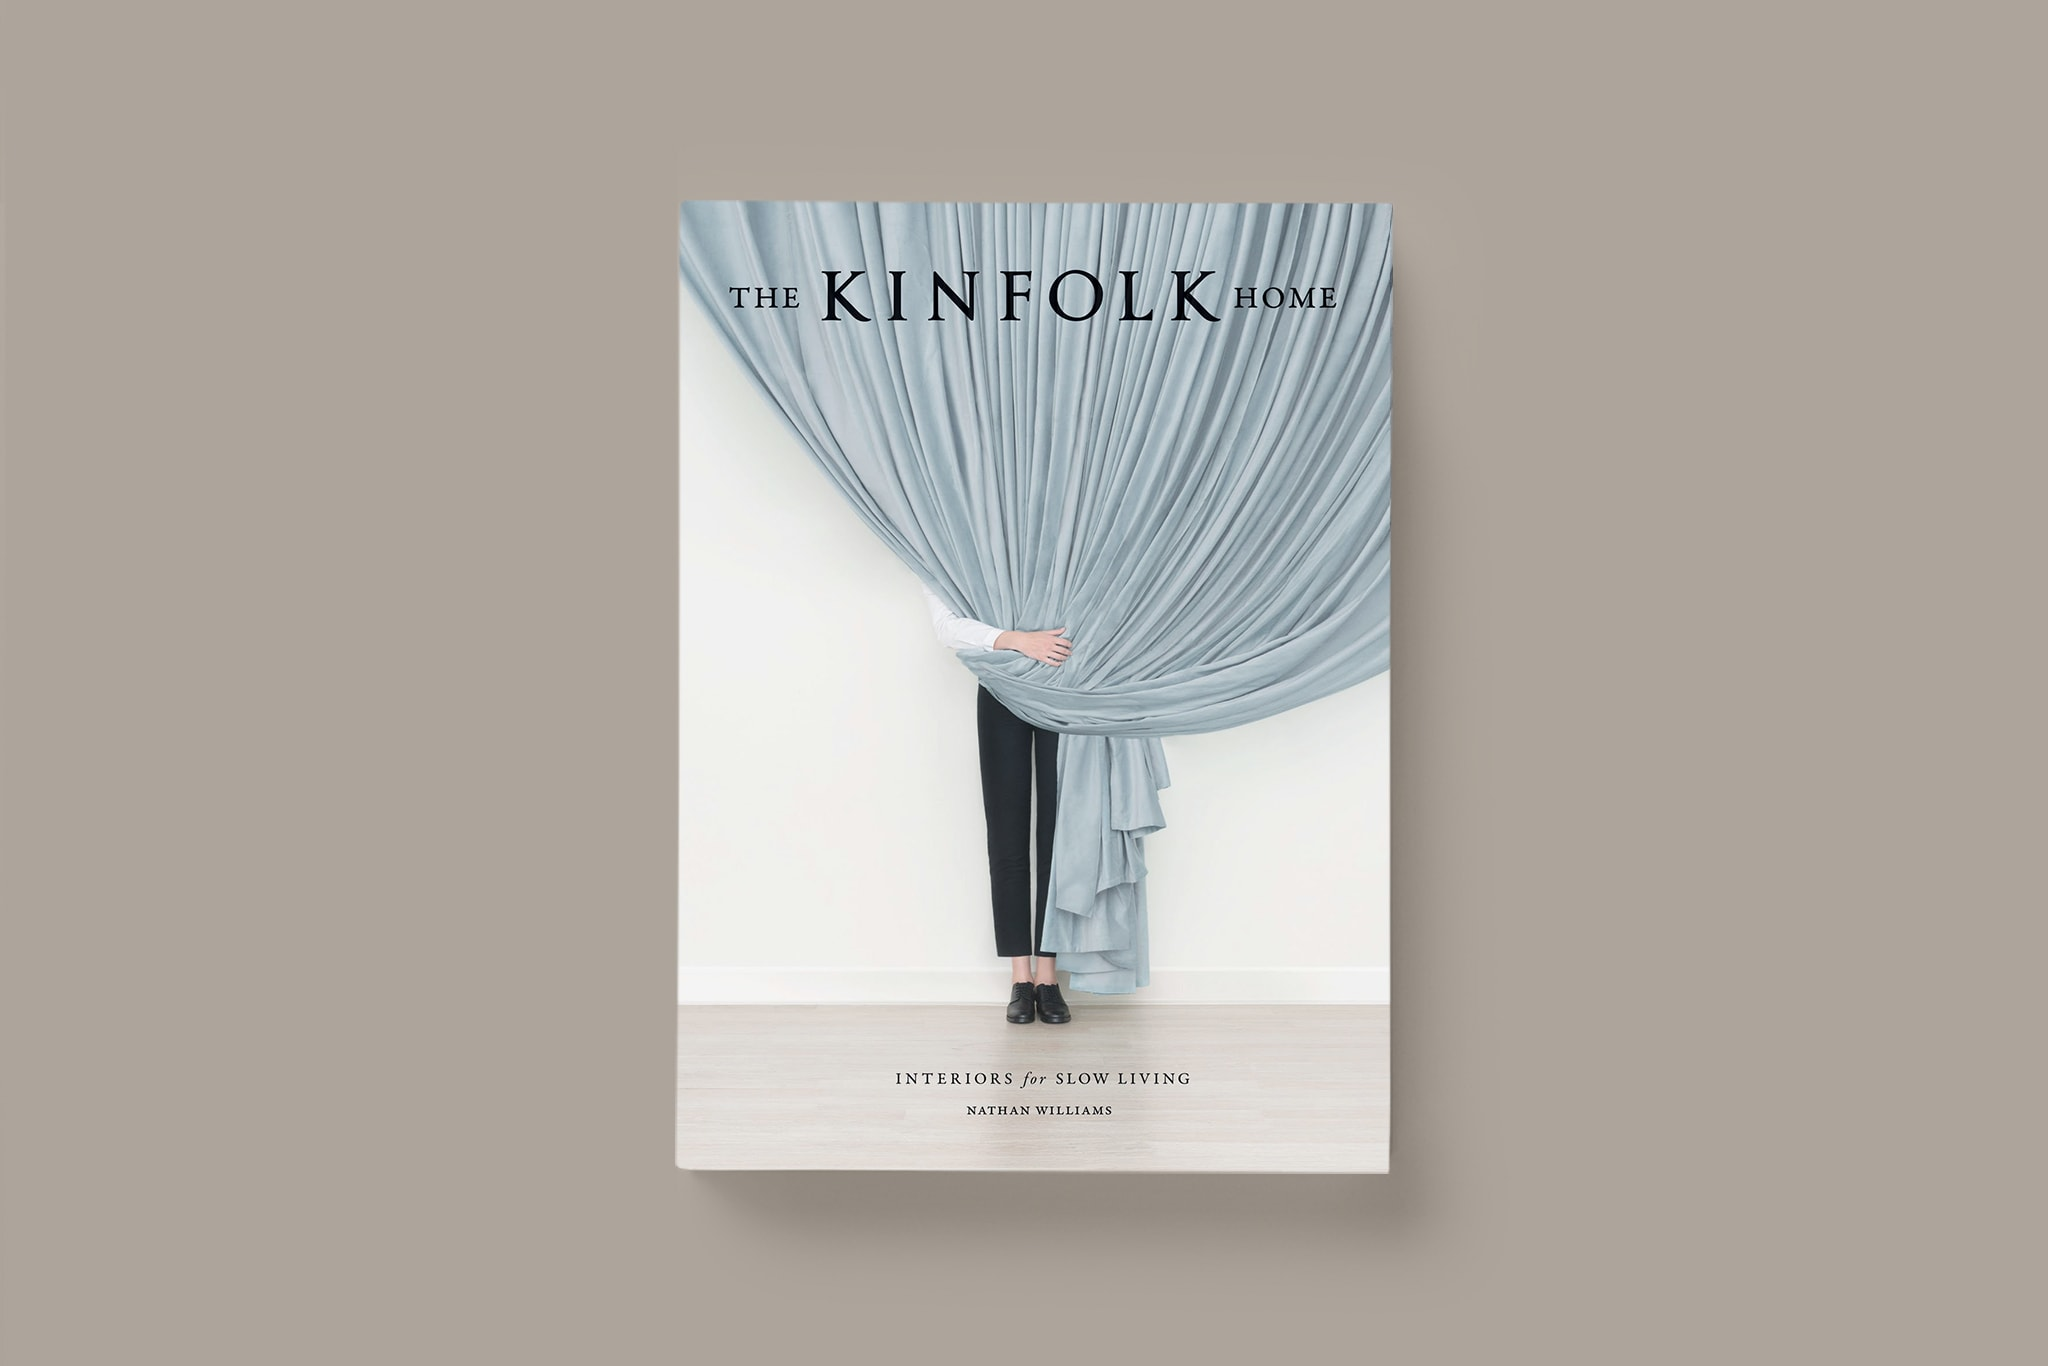 The Kinfolk Home: Interiors for Slow Living, Nathan Williams